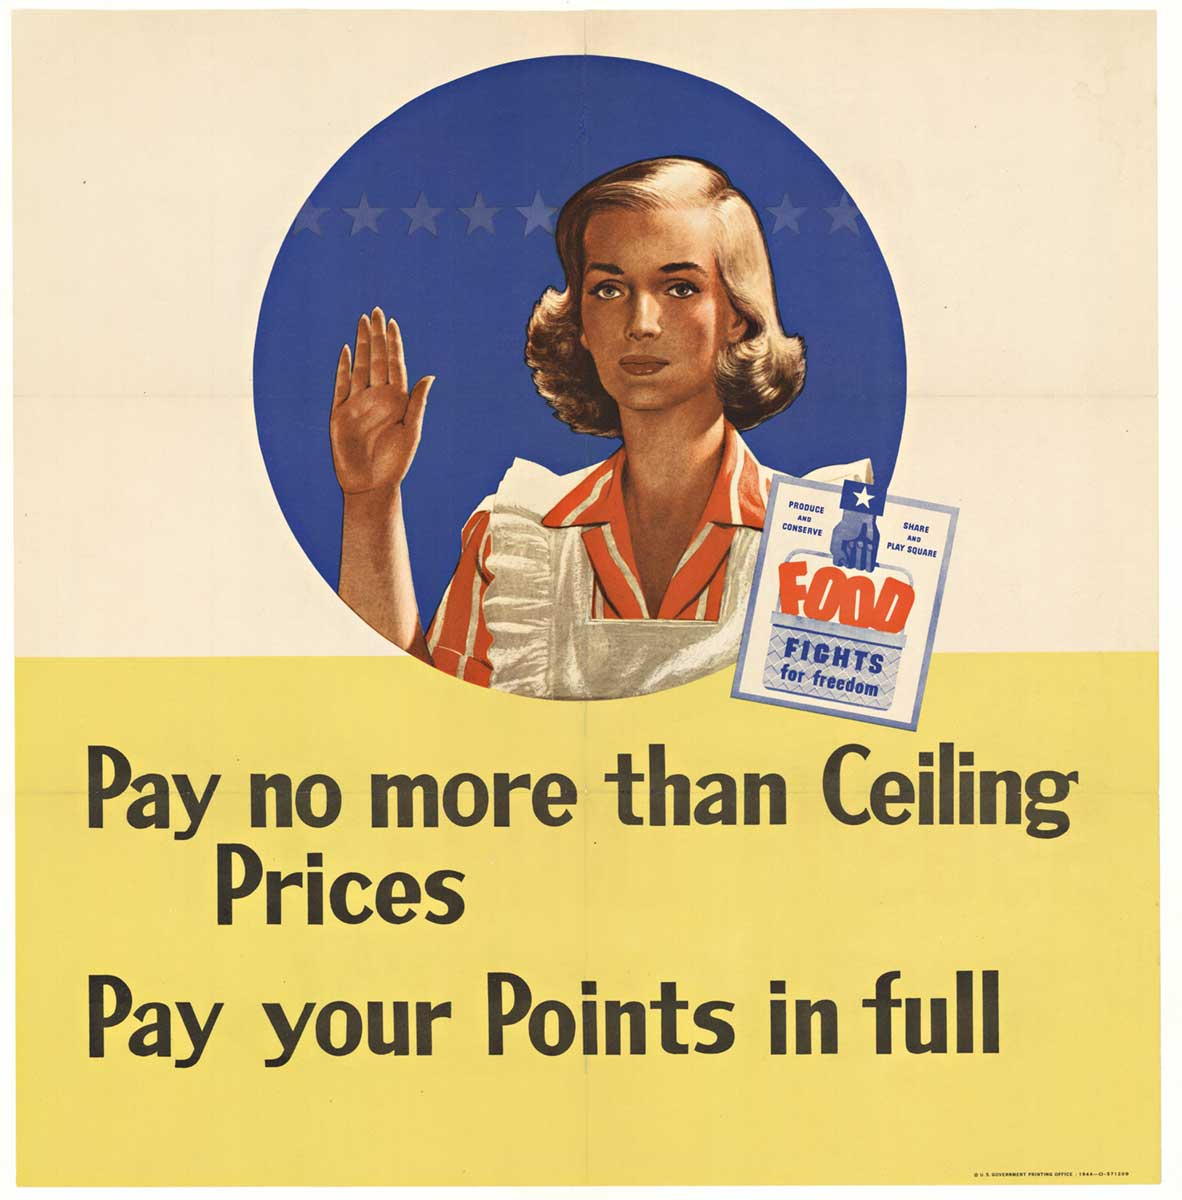 Pay no more than Ceiling Prices, Frederick  G. Cooper